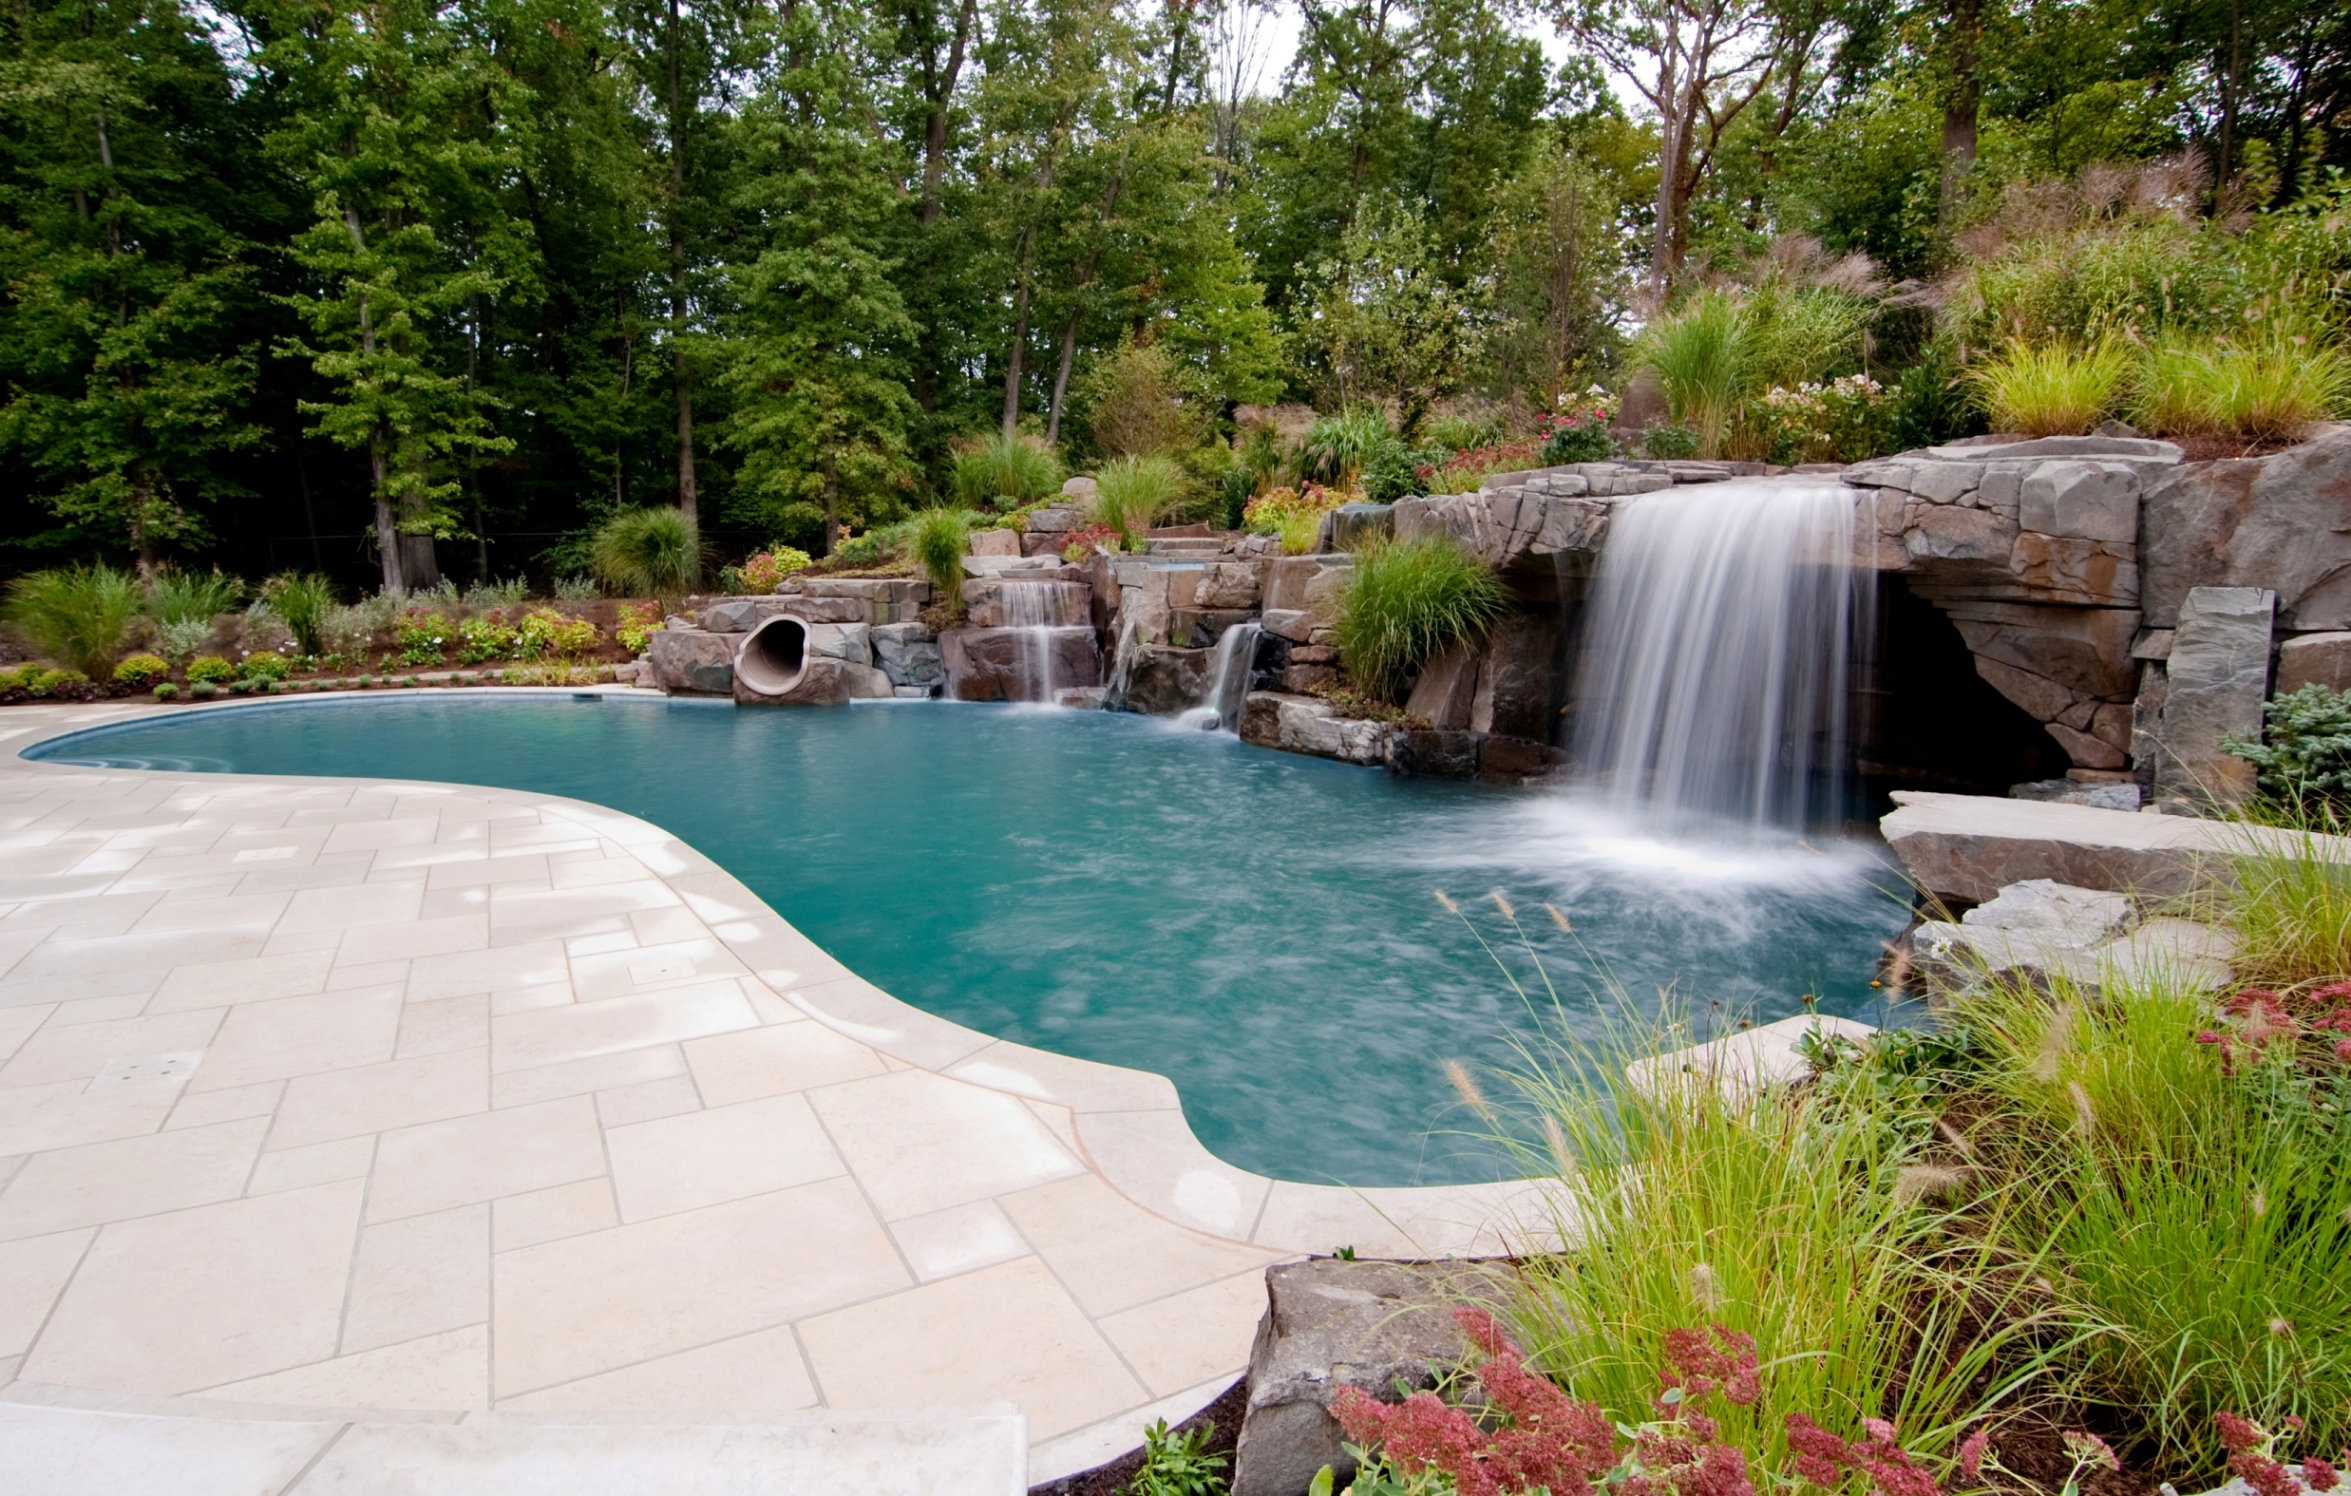 New jersey inground pool company earns international award for Pictures of inground pools